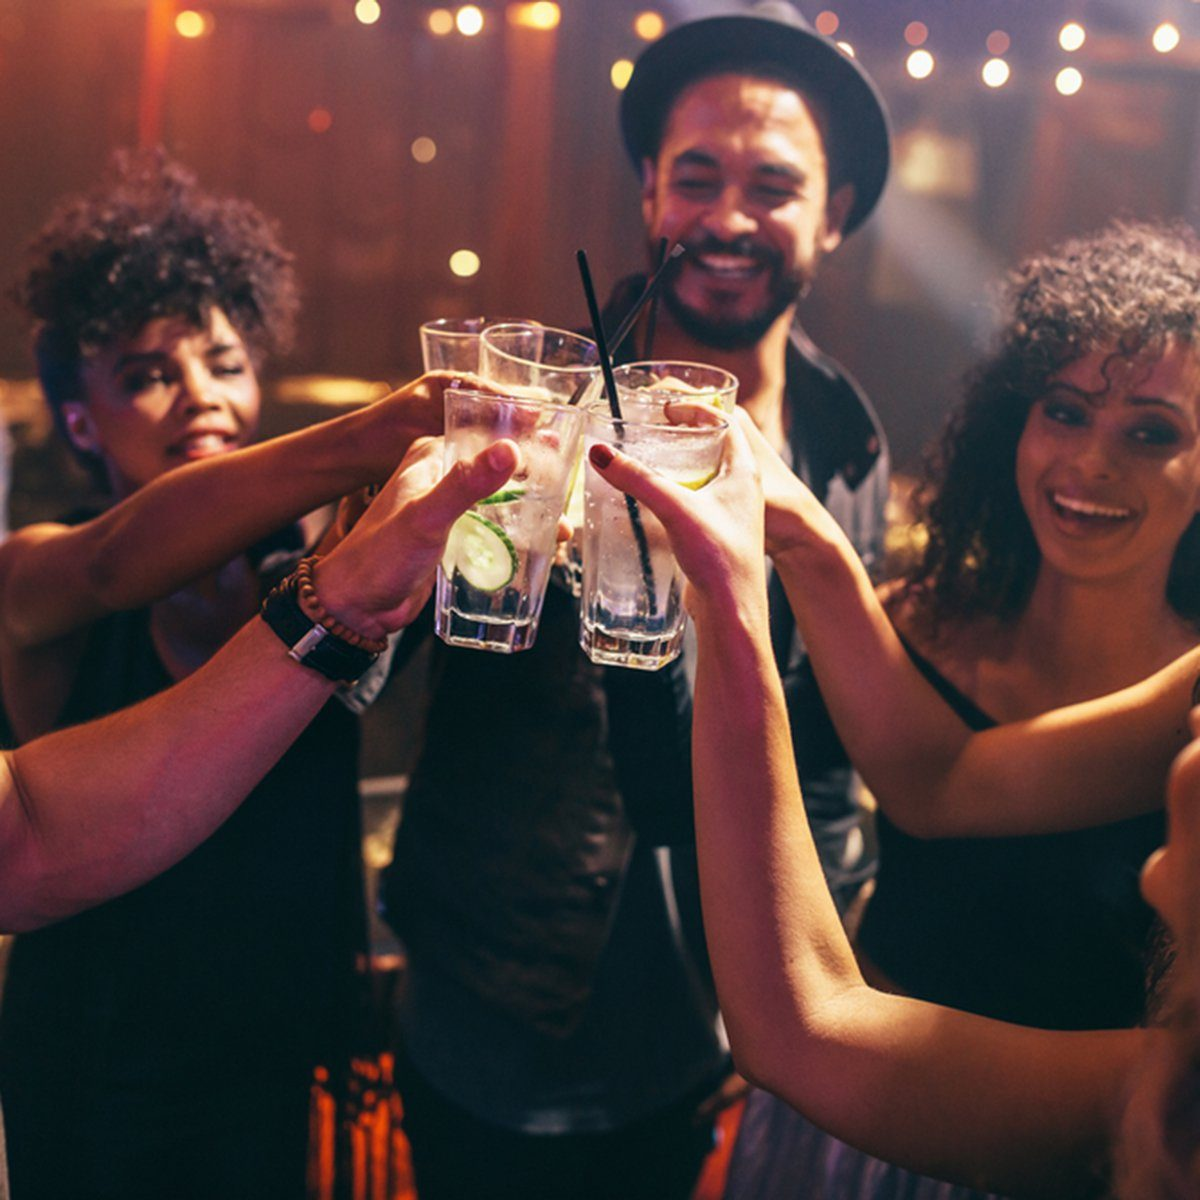 Group of friends having drinks at the night club party.